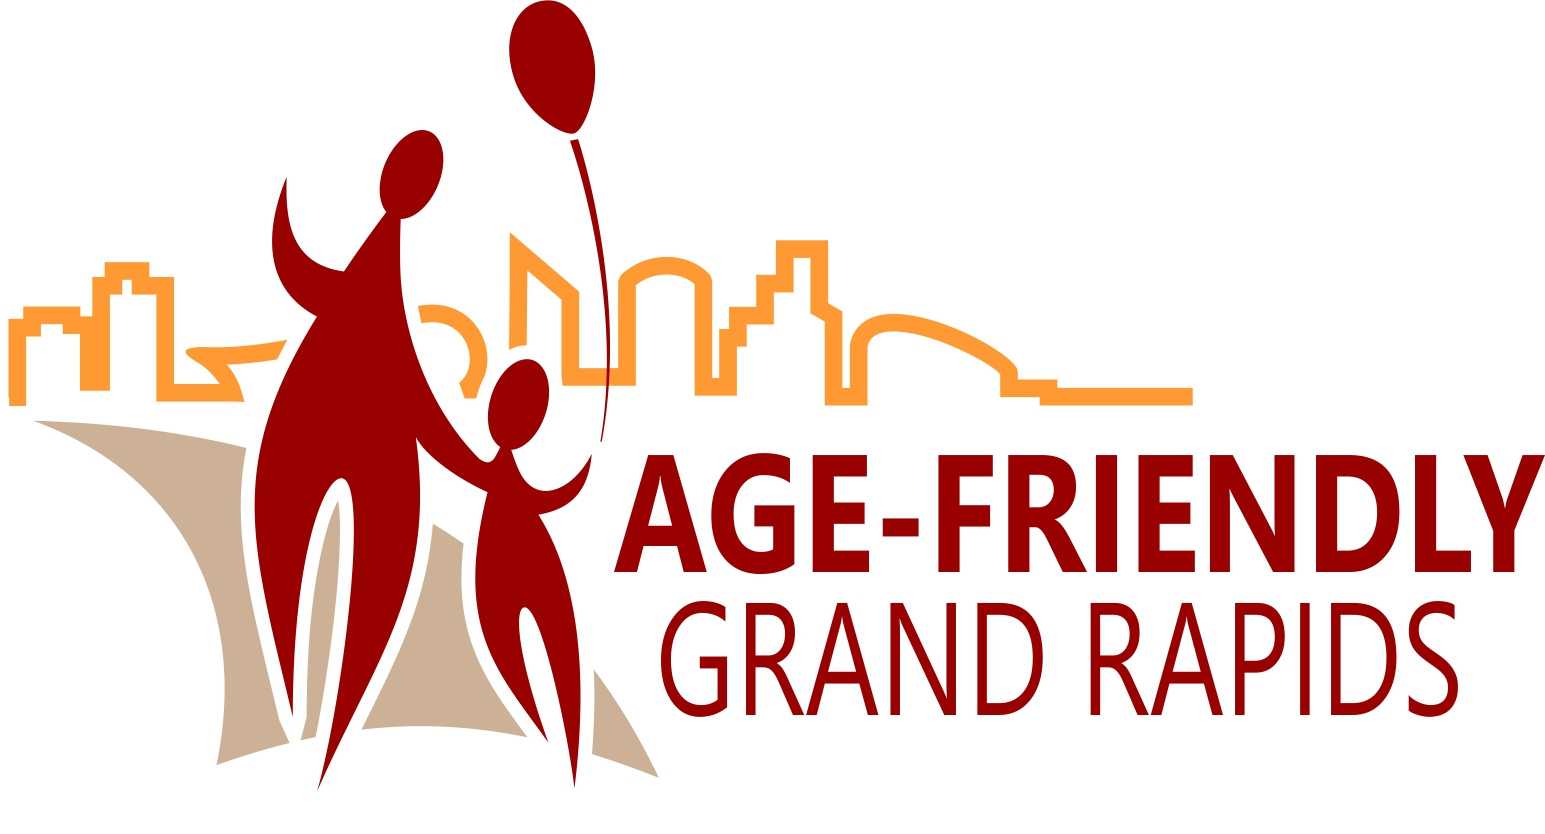 JPG image of age friendly Grand Rapids